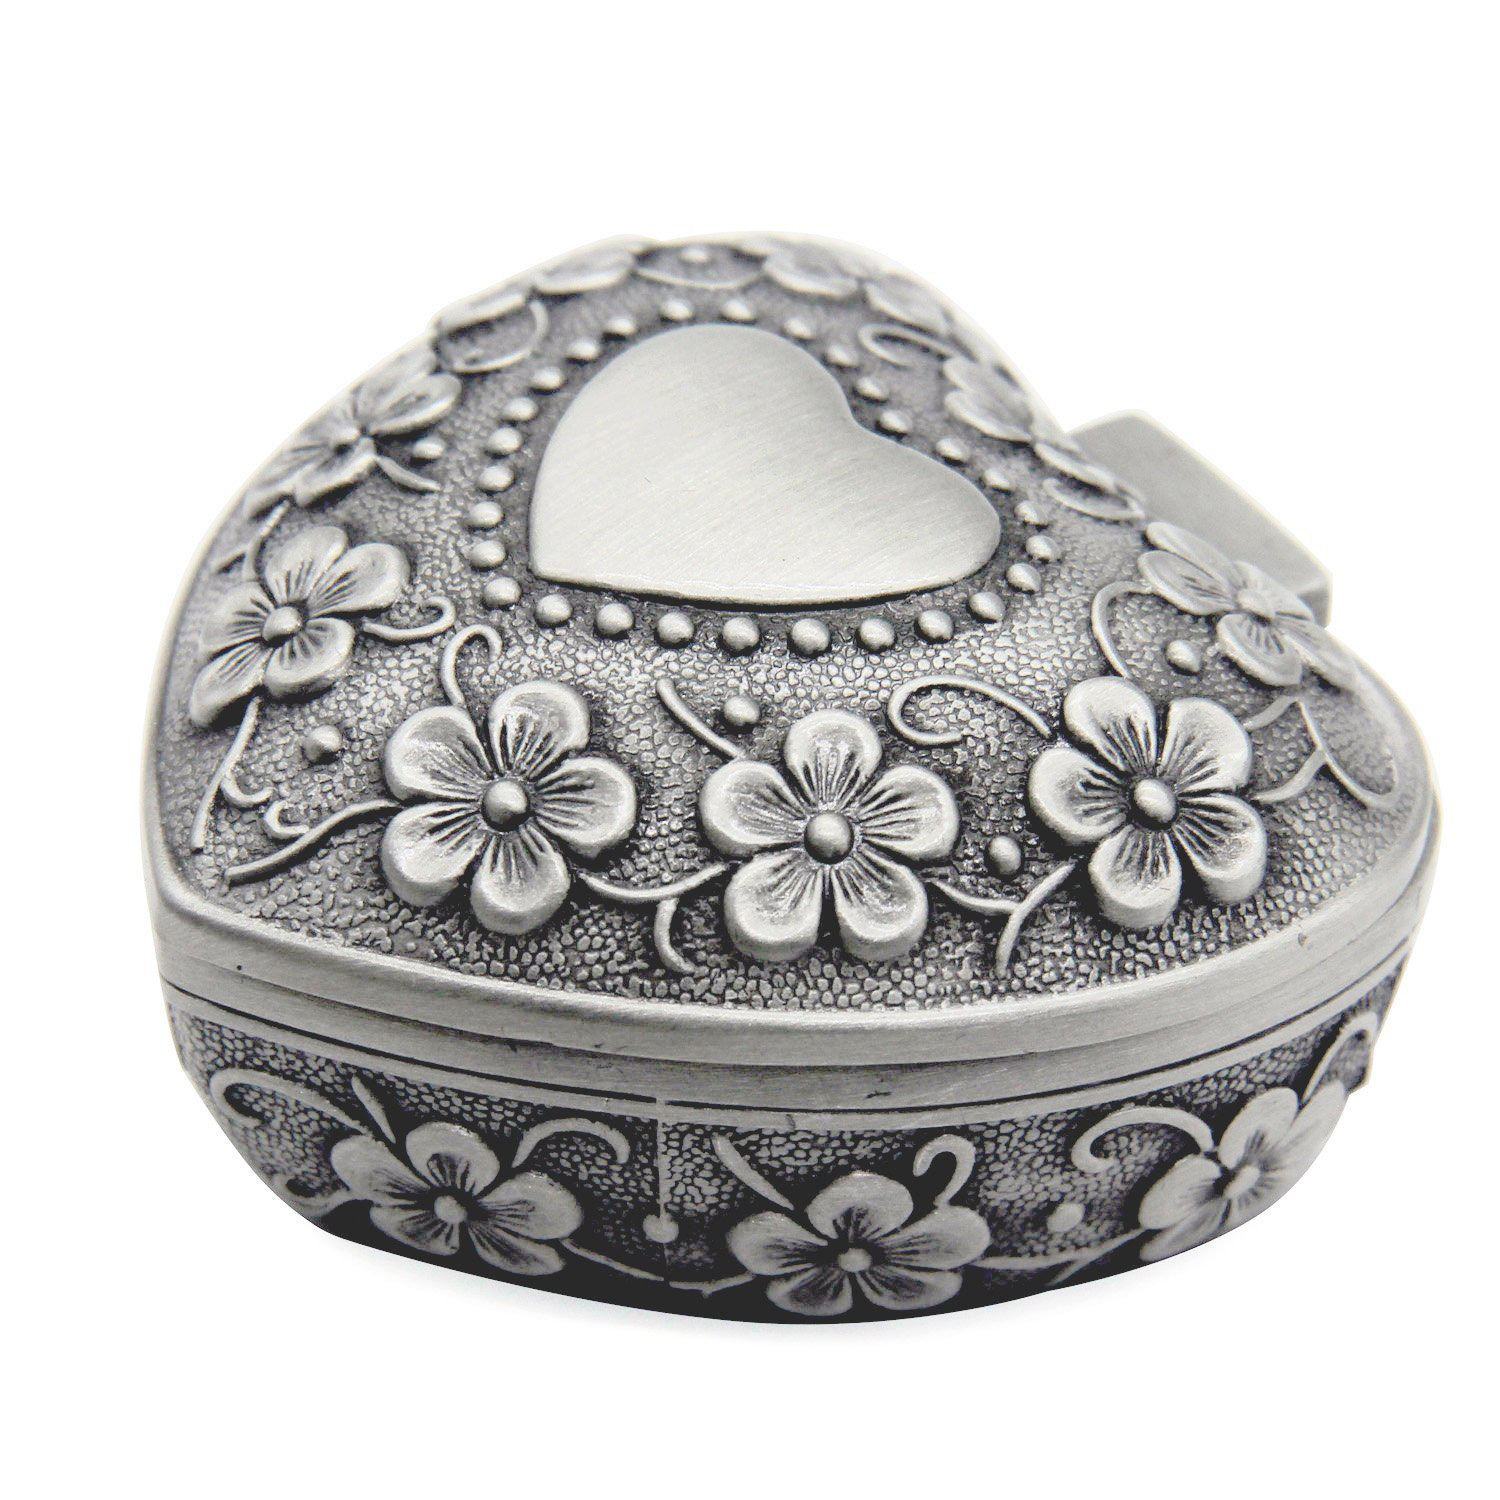 Cute Vintage Antique Silver Heart Shaped Jewelry Box